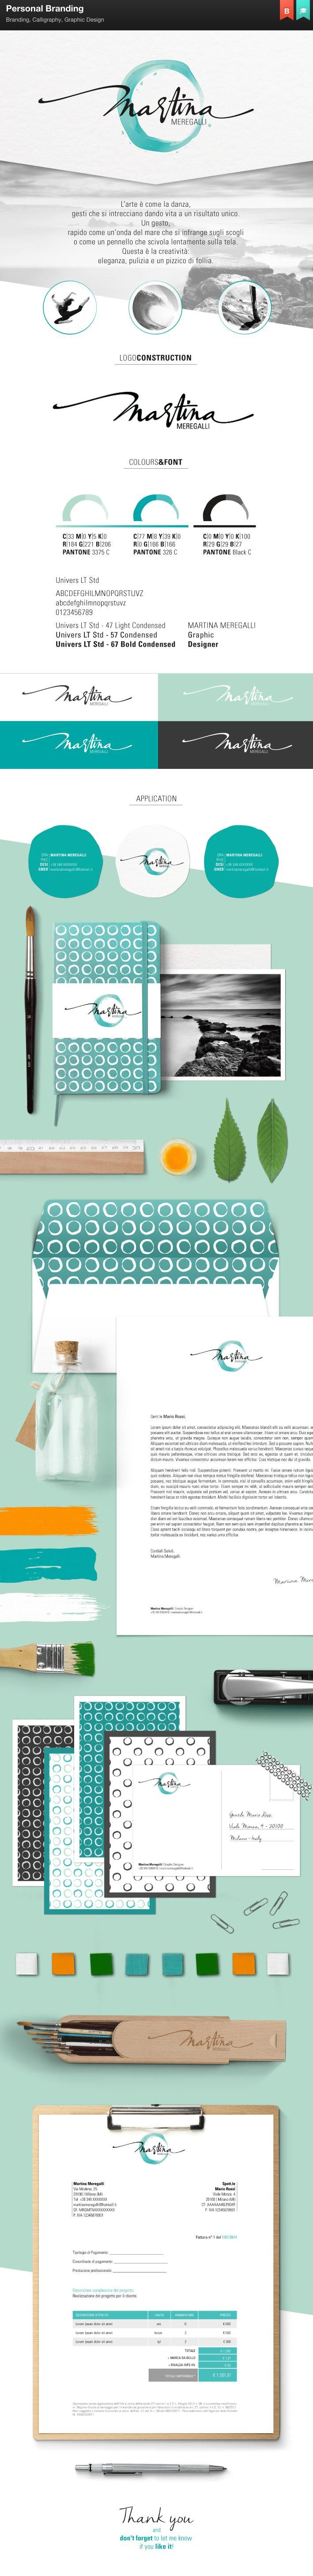 Corporate Identity - Martina Meregalli (behance)